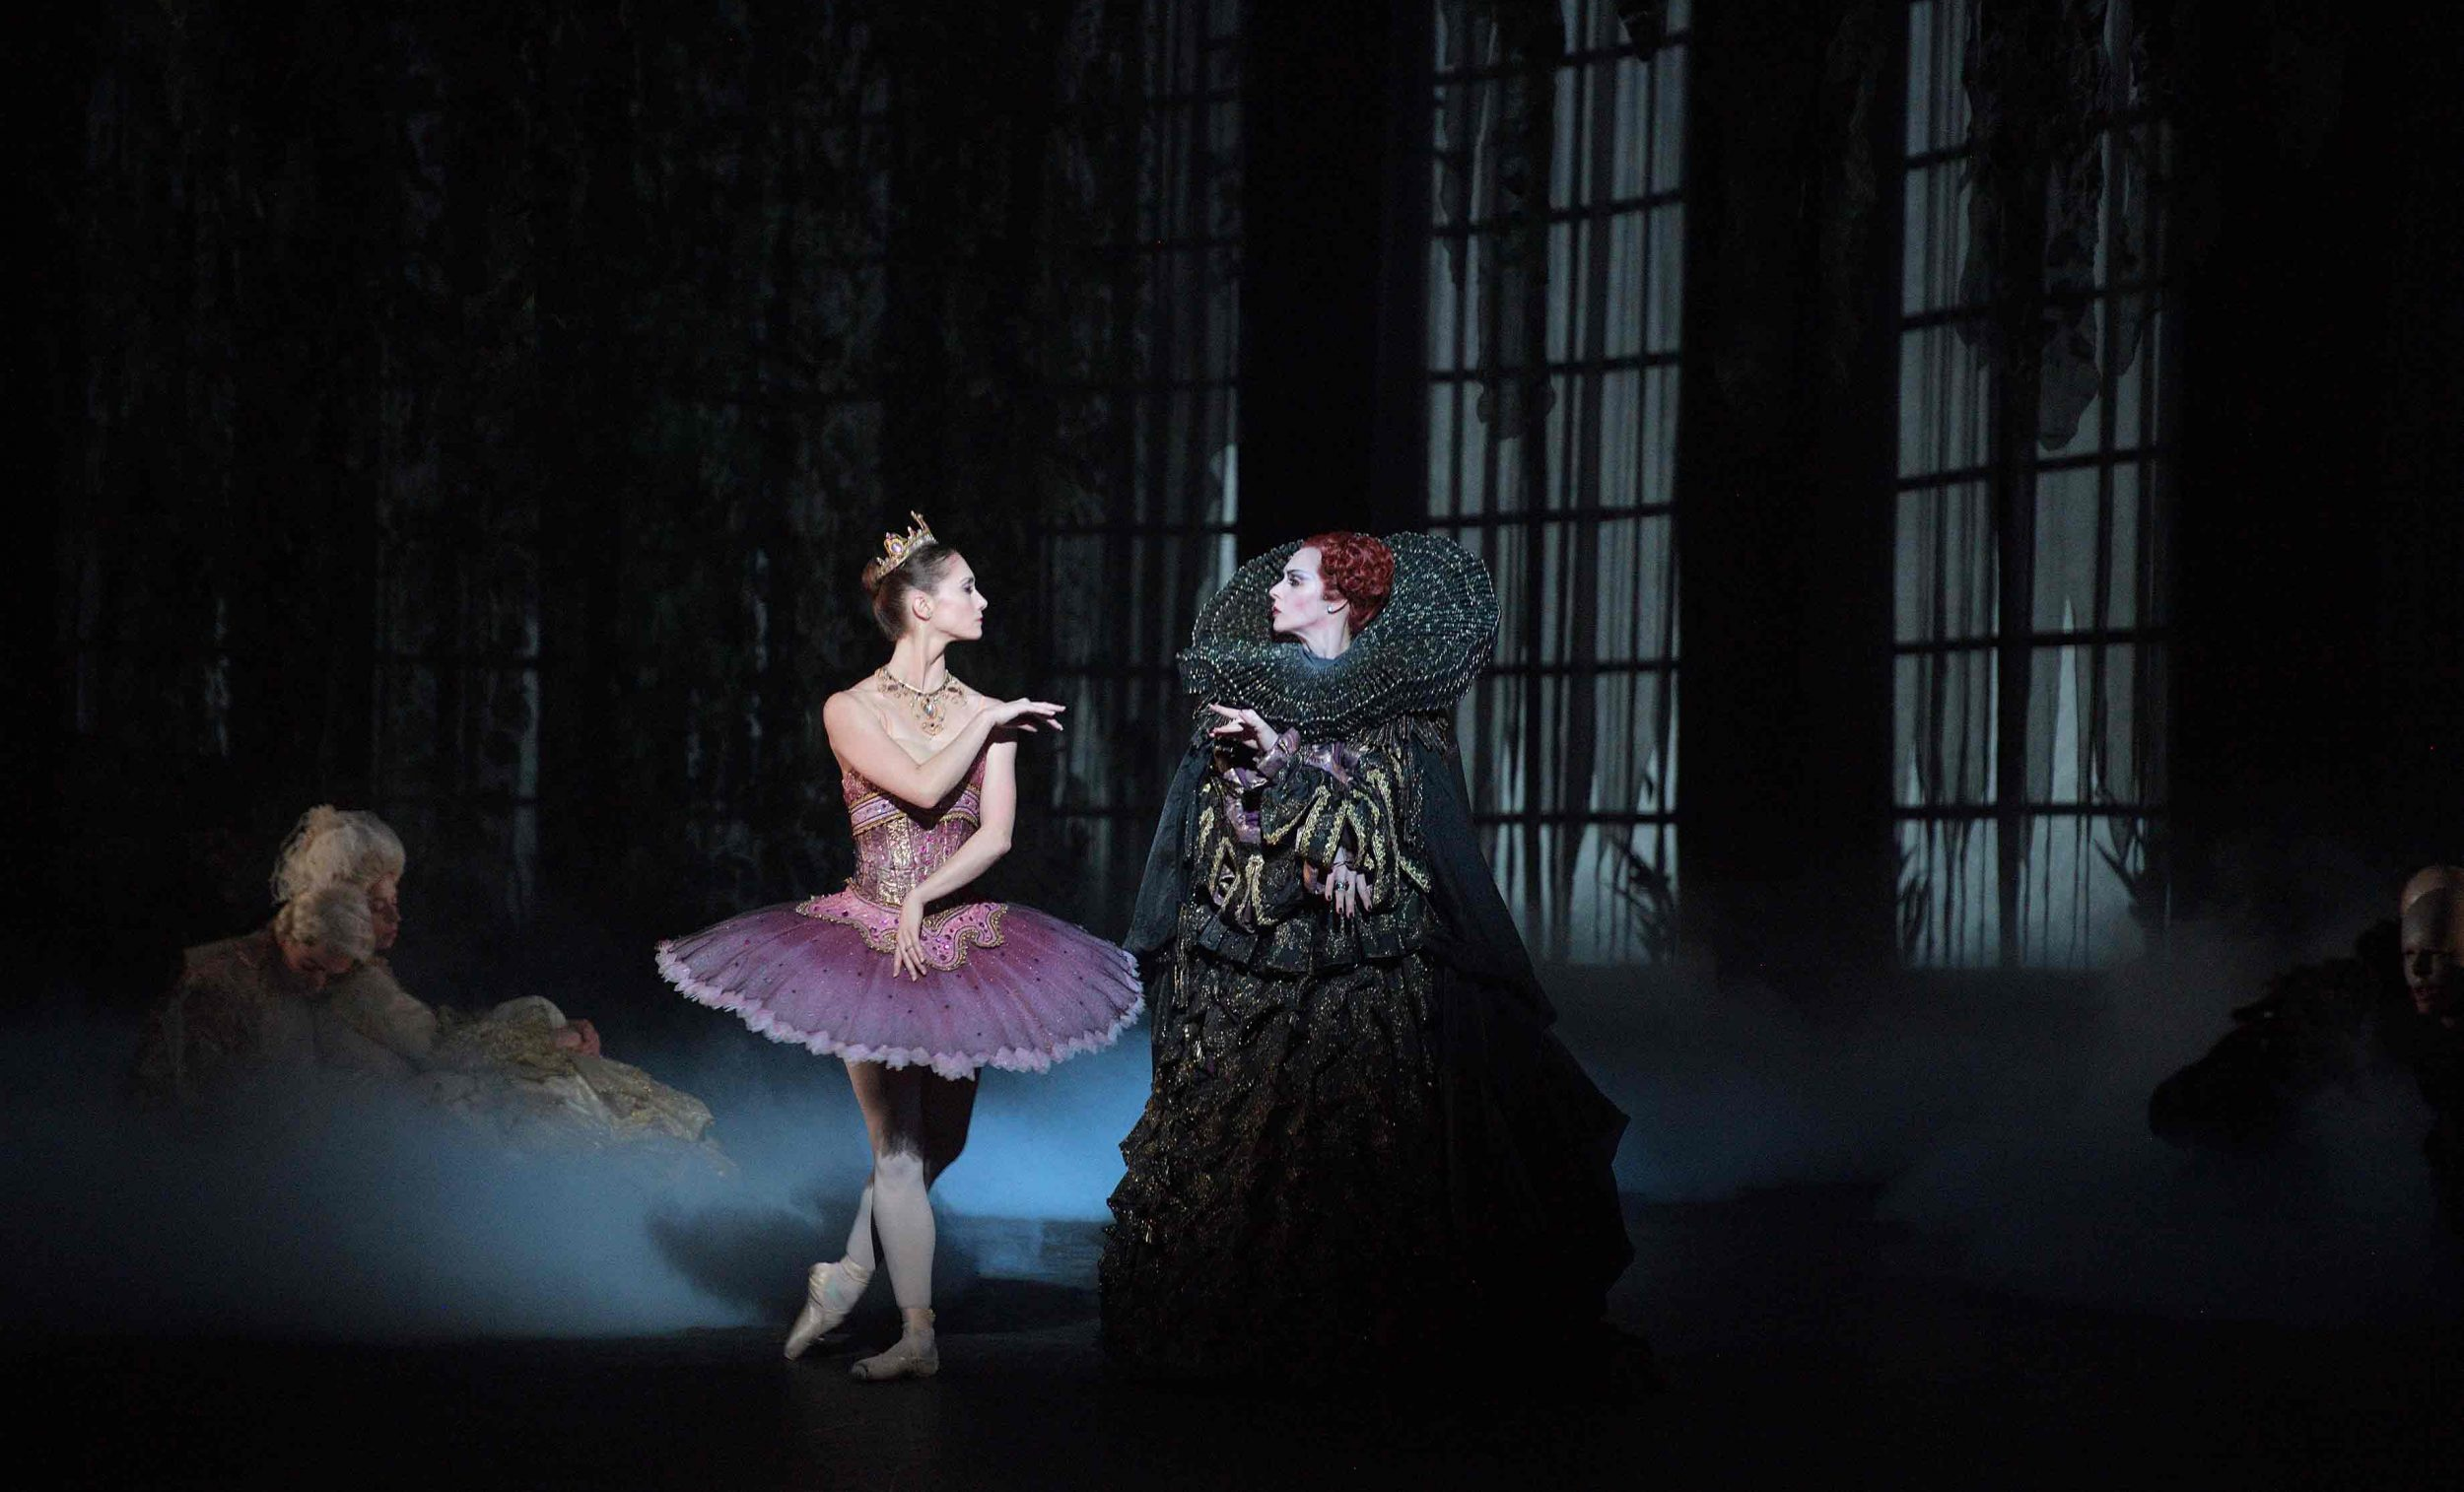 Alison-McWhinney-as-Lilac-Fairy-and-Stina-Quagebeur-as-Carabosse-in-The-Sleeping-Beauty-©-Laurent-Liotardo_WEB